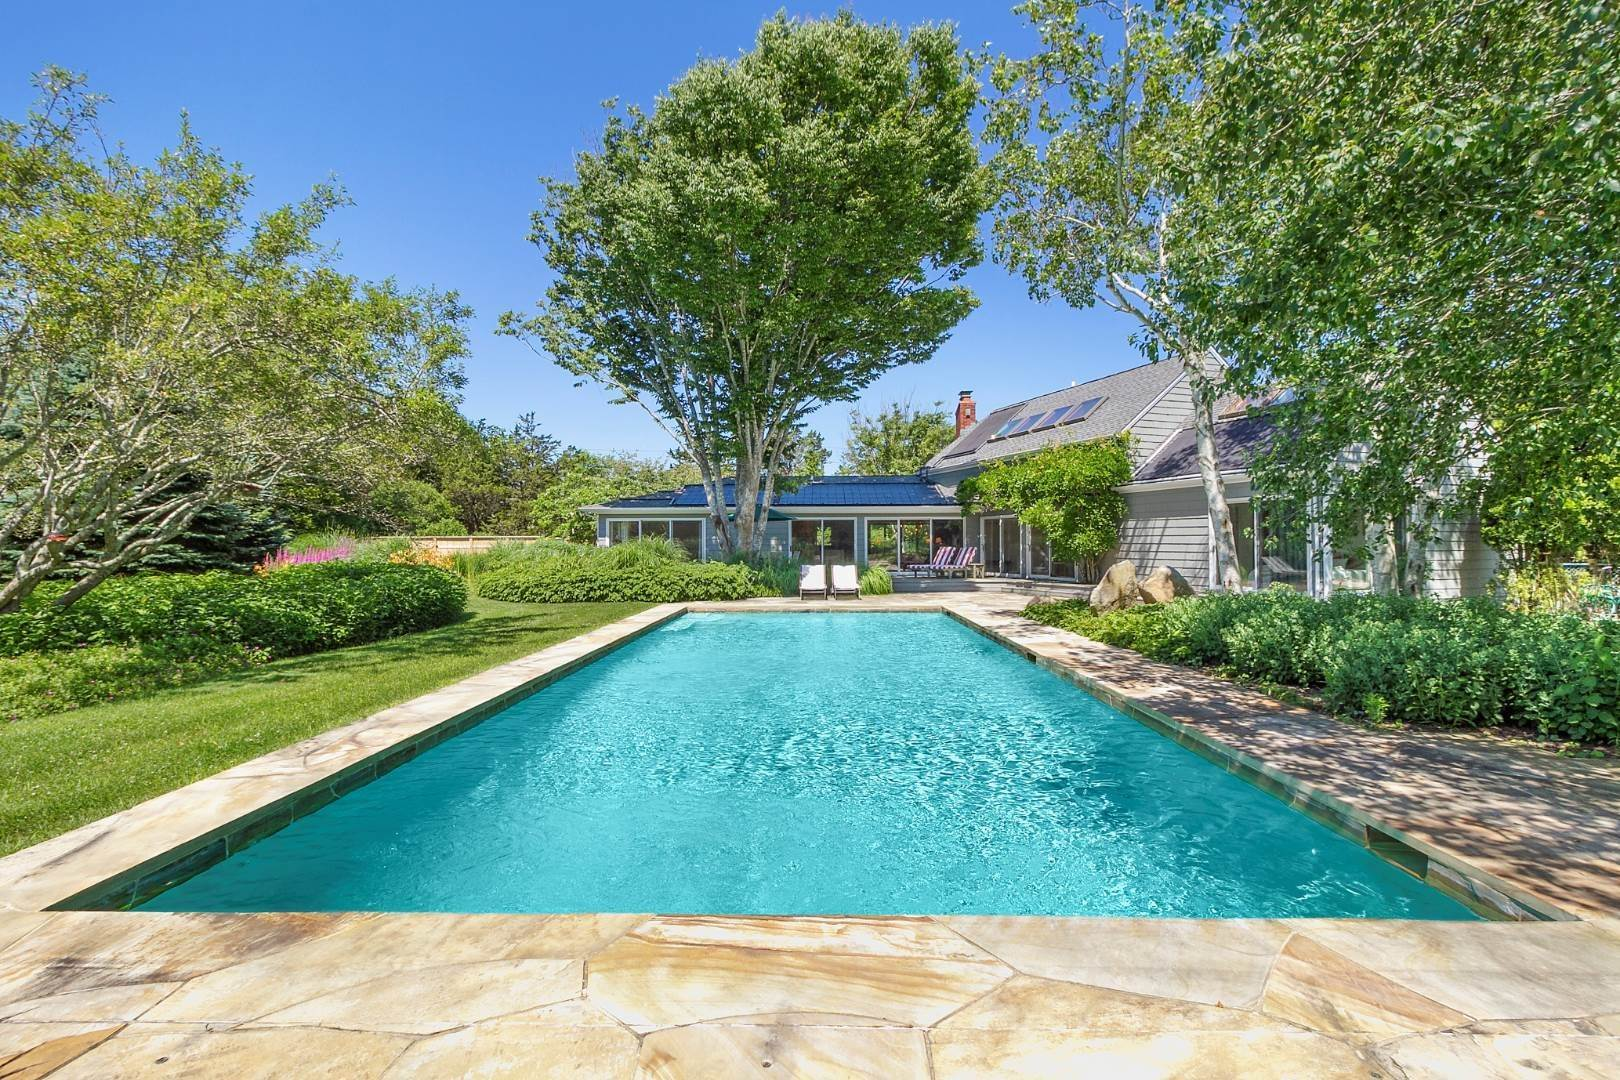 Single Family Home at Pool And Privacy Near Sagaponack Beaches 51 Seascape Lane, Sagaponack Village, NY 11962